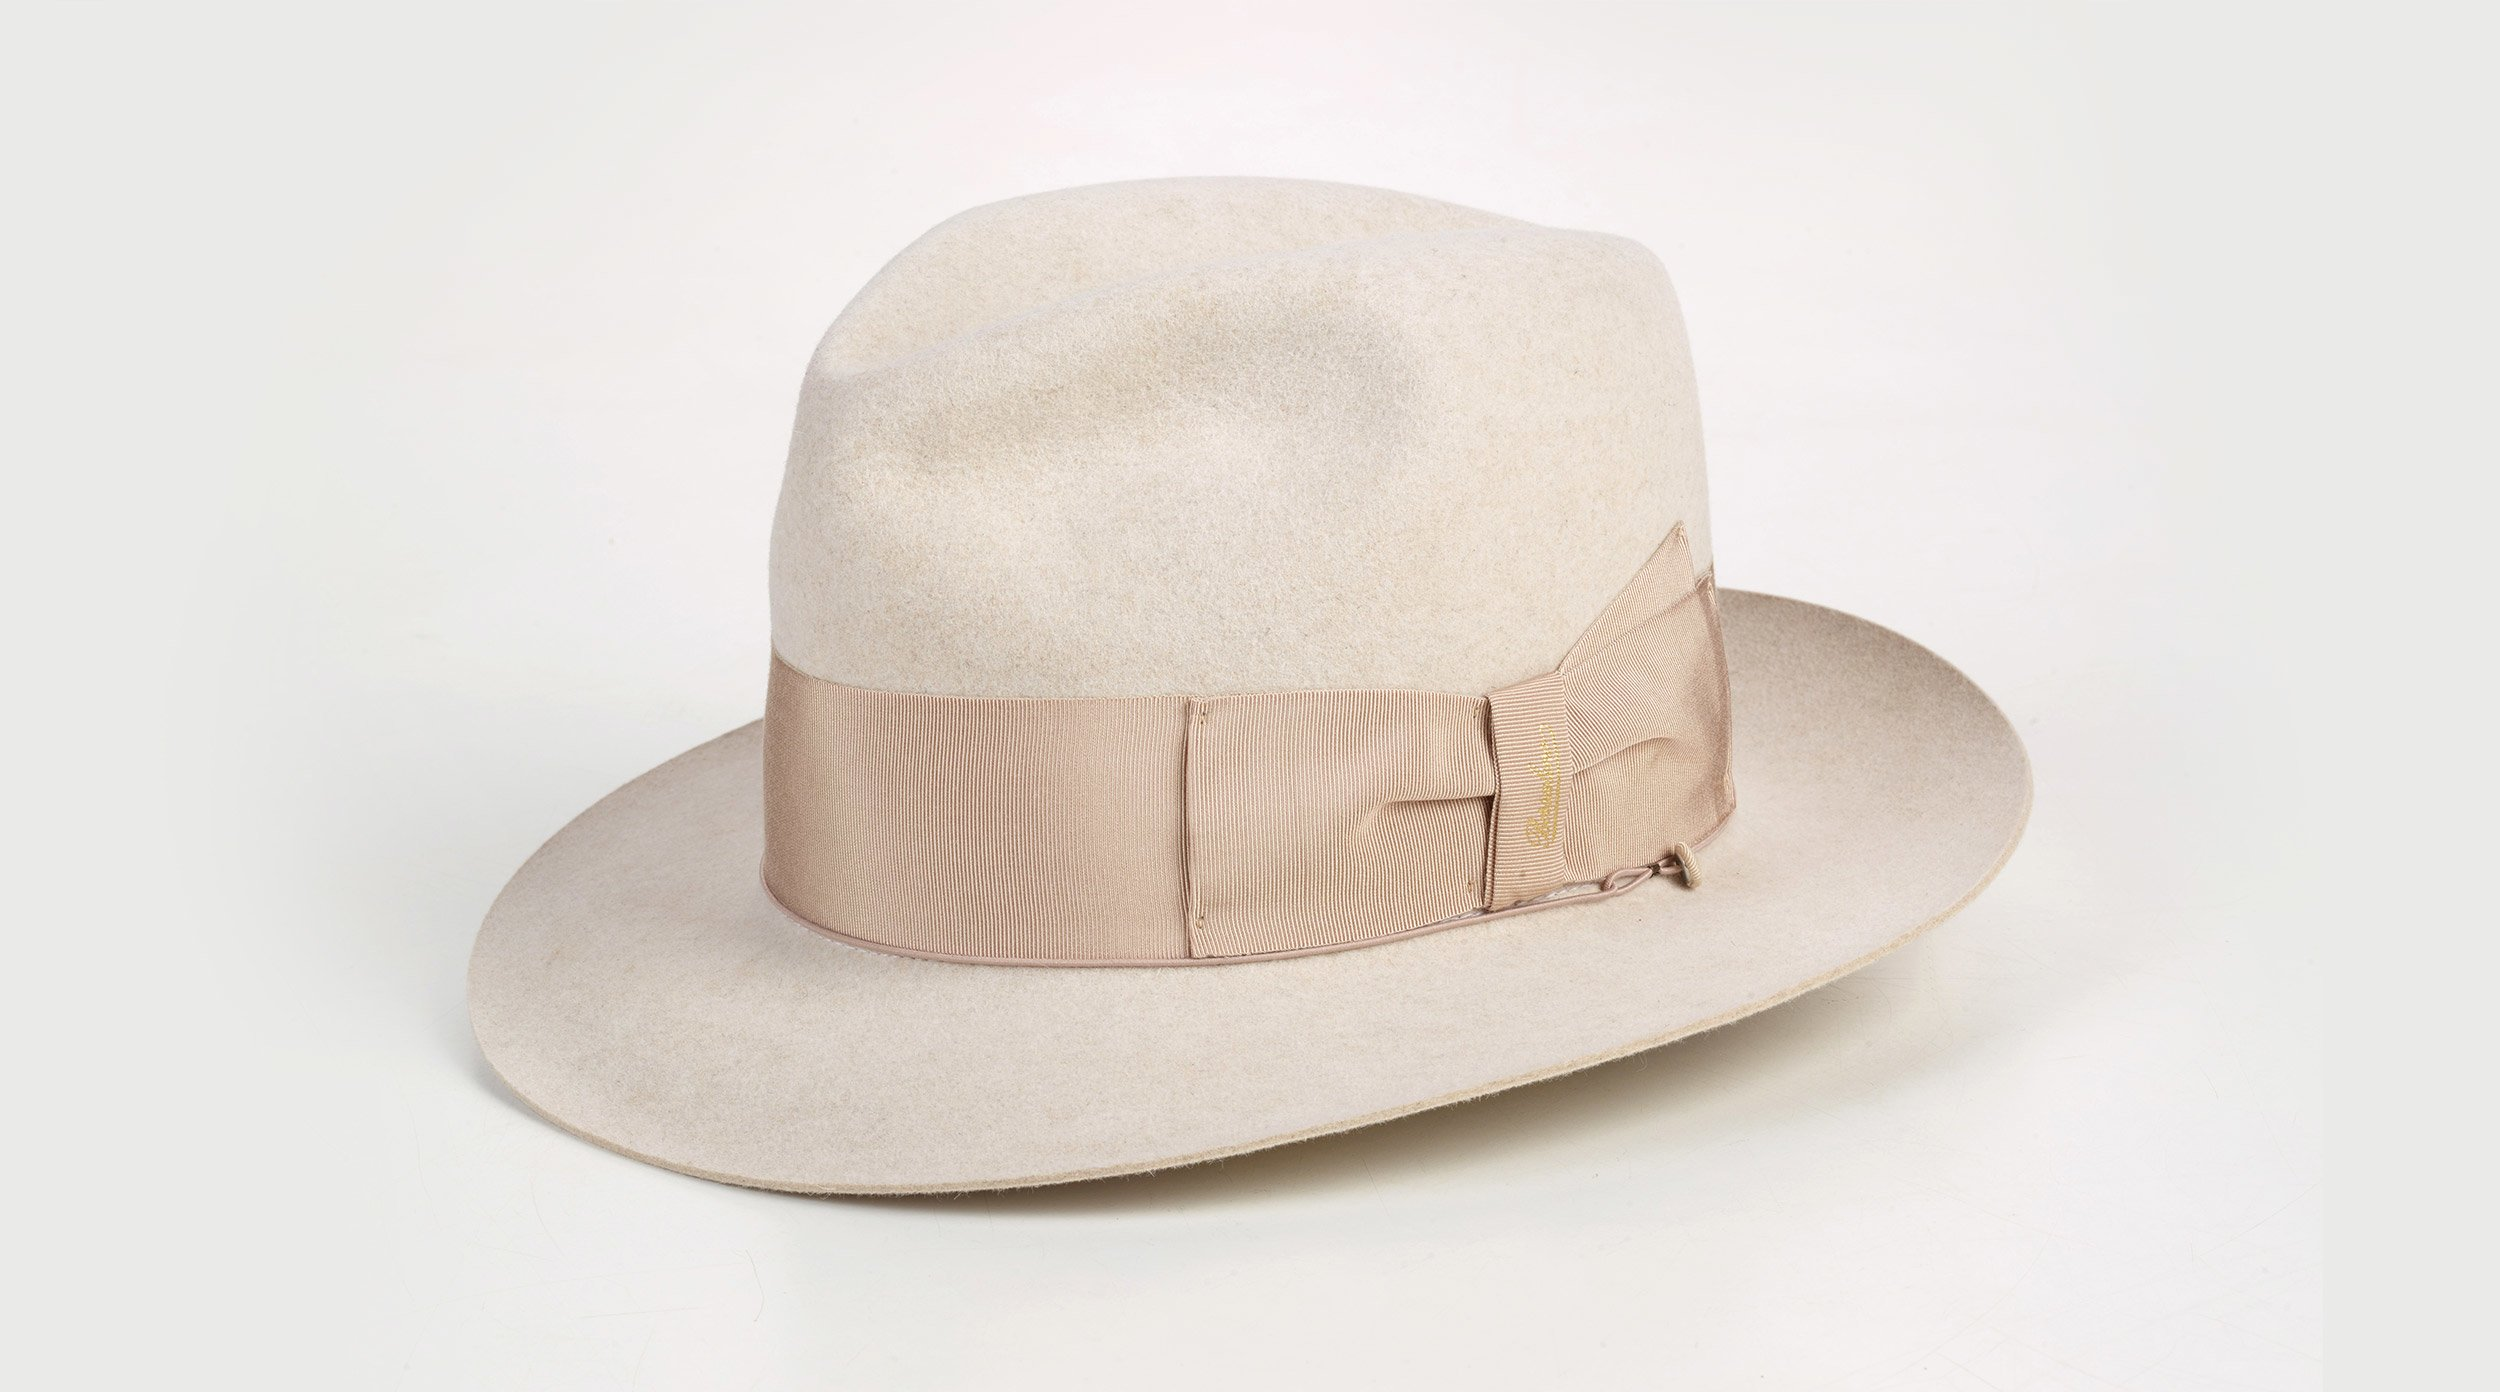 INTRODUCING THE BOGART BY BORSALINO